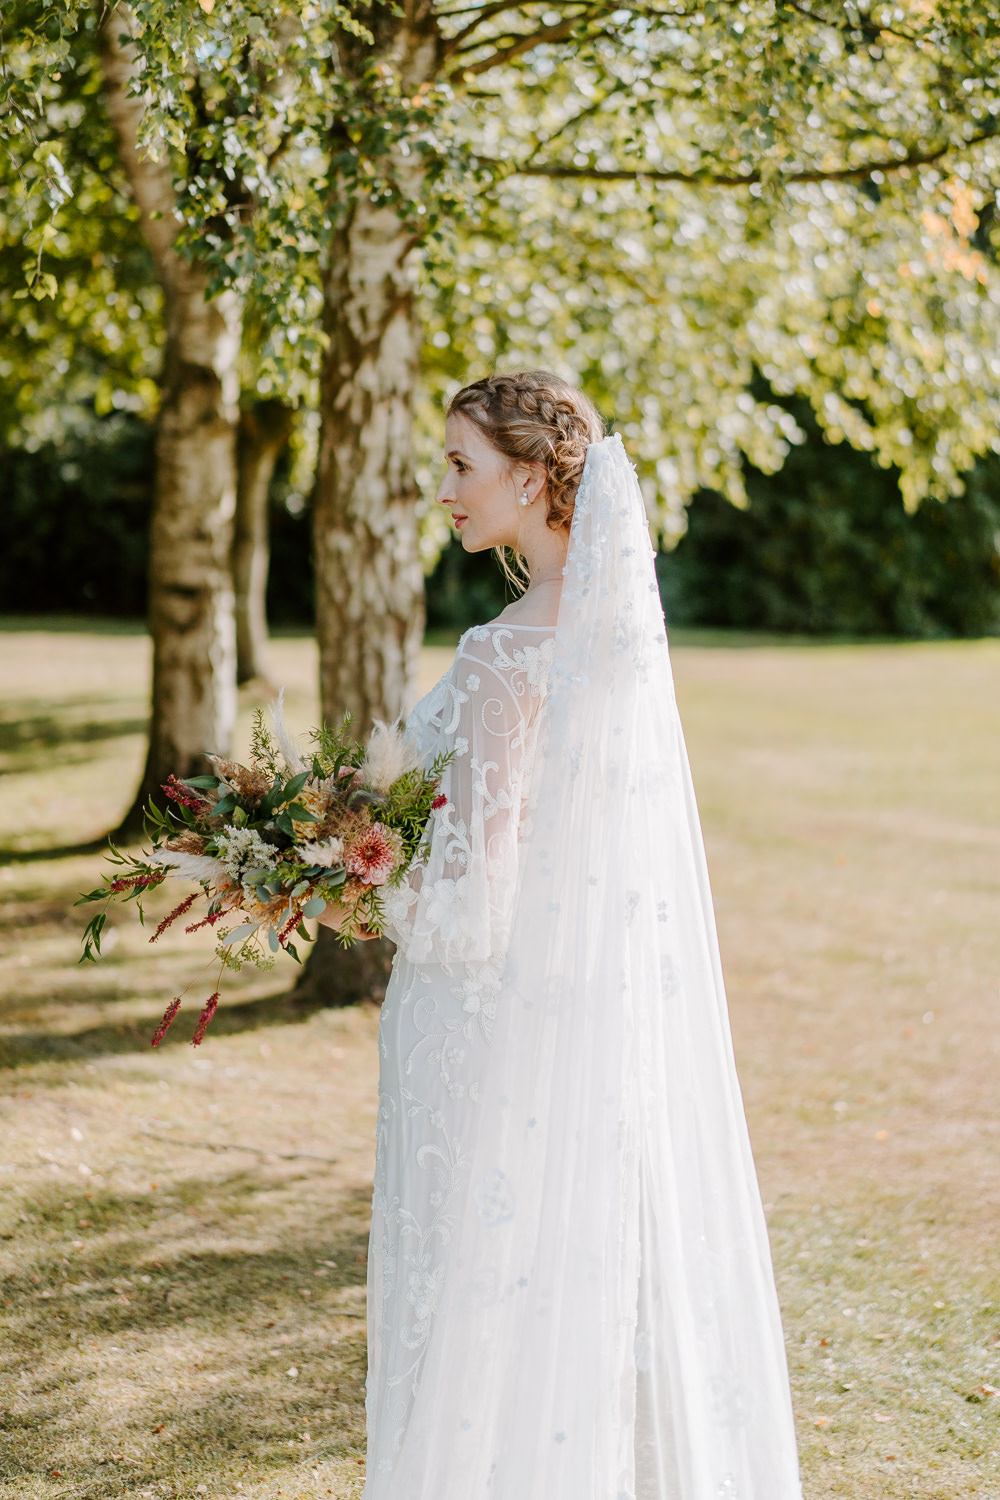 Dress Gown Bride Bridal Floral Train Lace Veil Contemporary Wedding Ideas Chloe Ely Photography